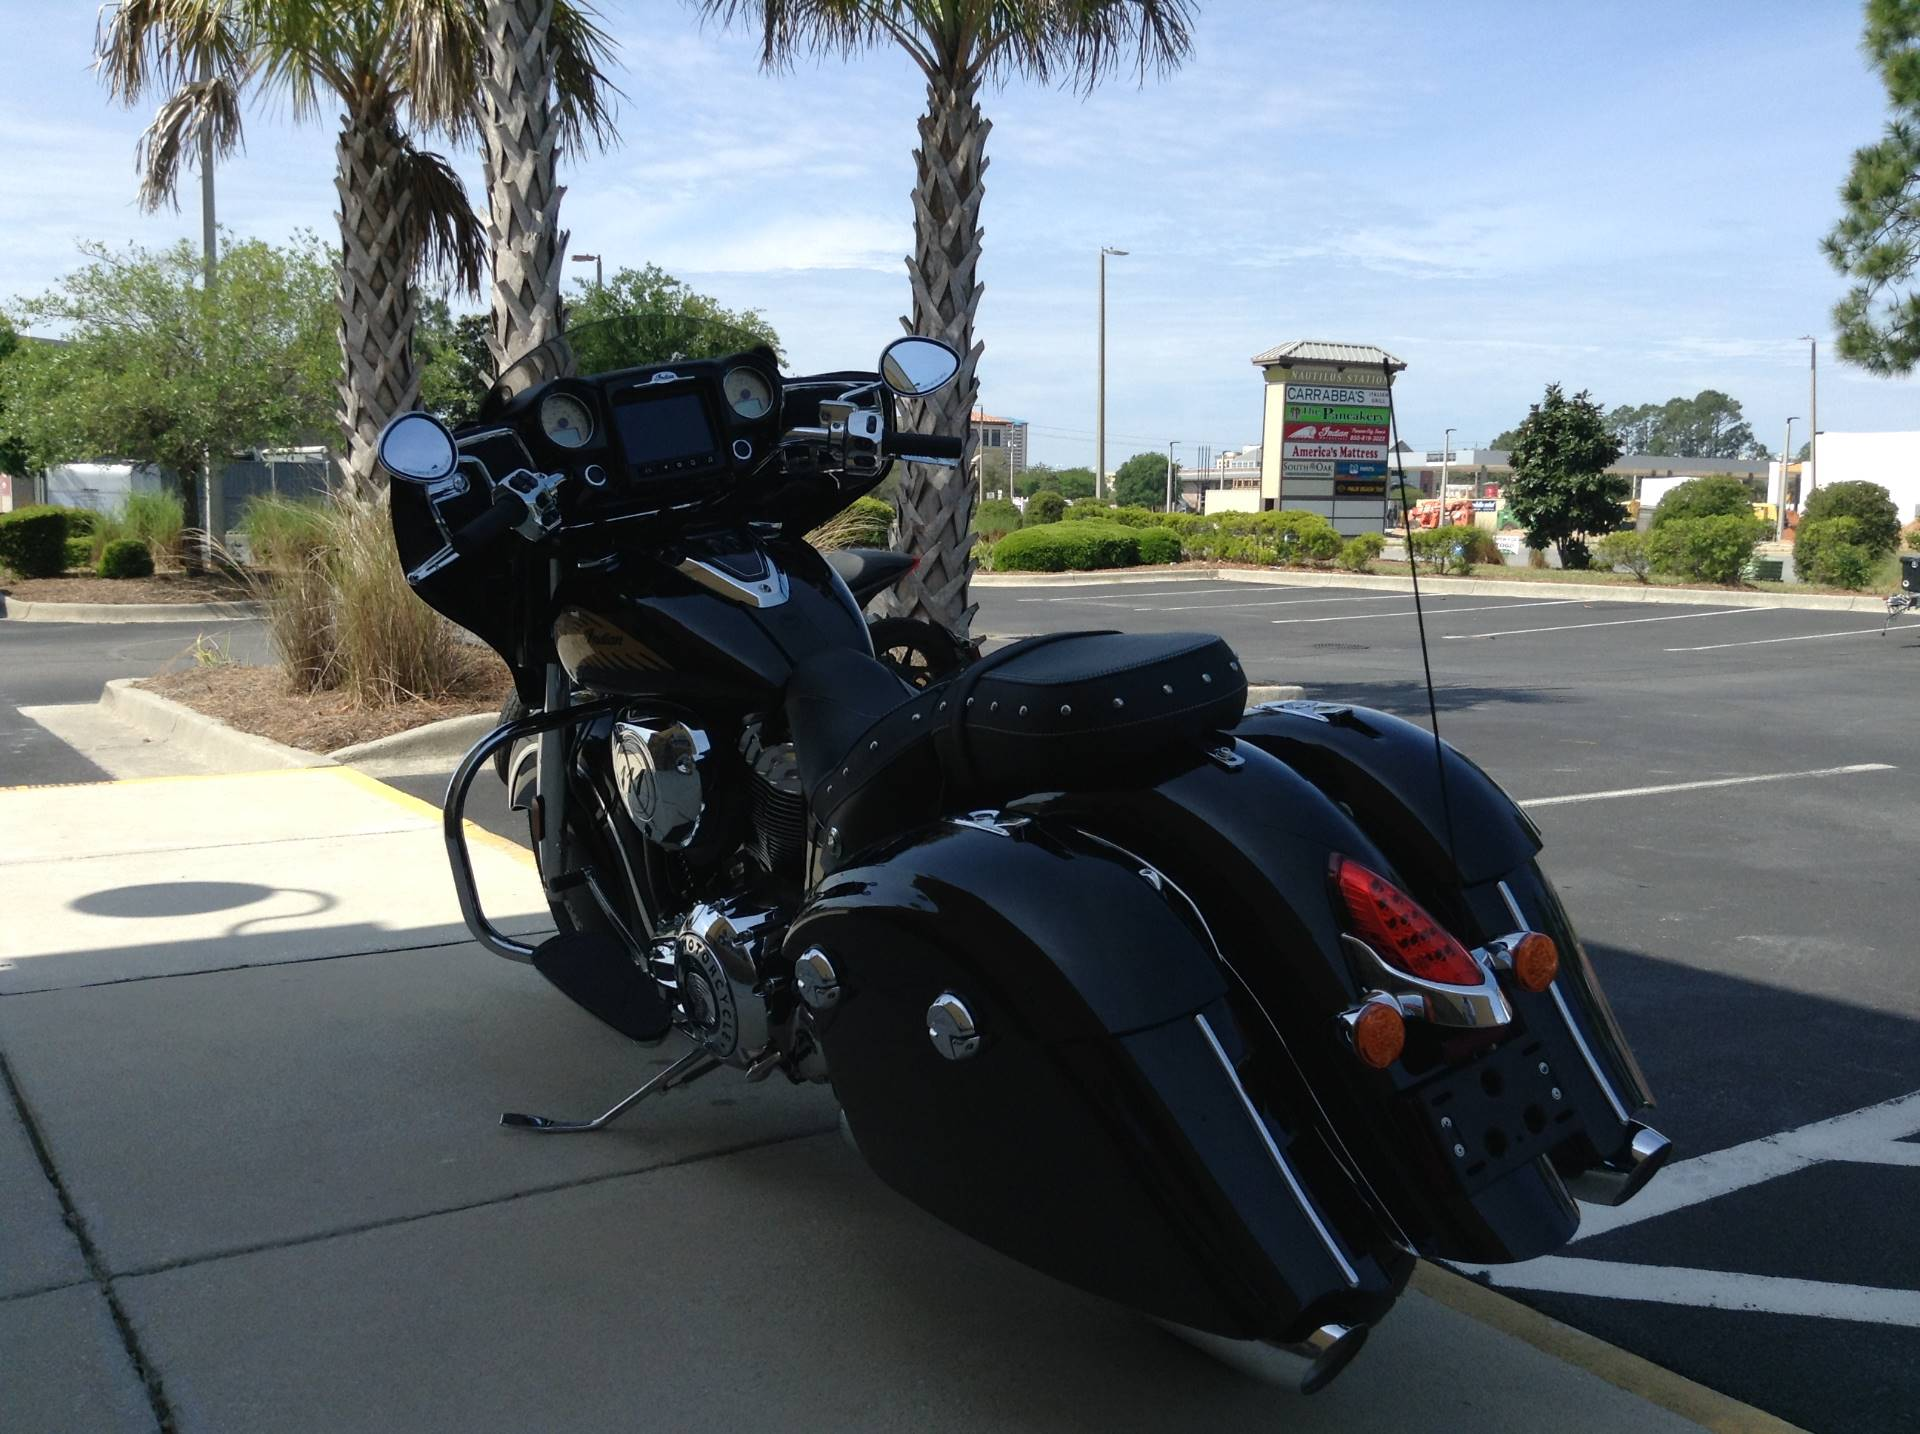 2020 Indian Chieftain Classic in Panama City Beach, Florida - Photo 3